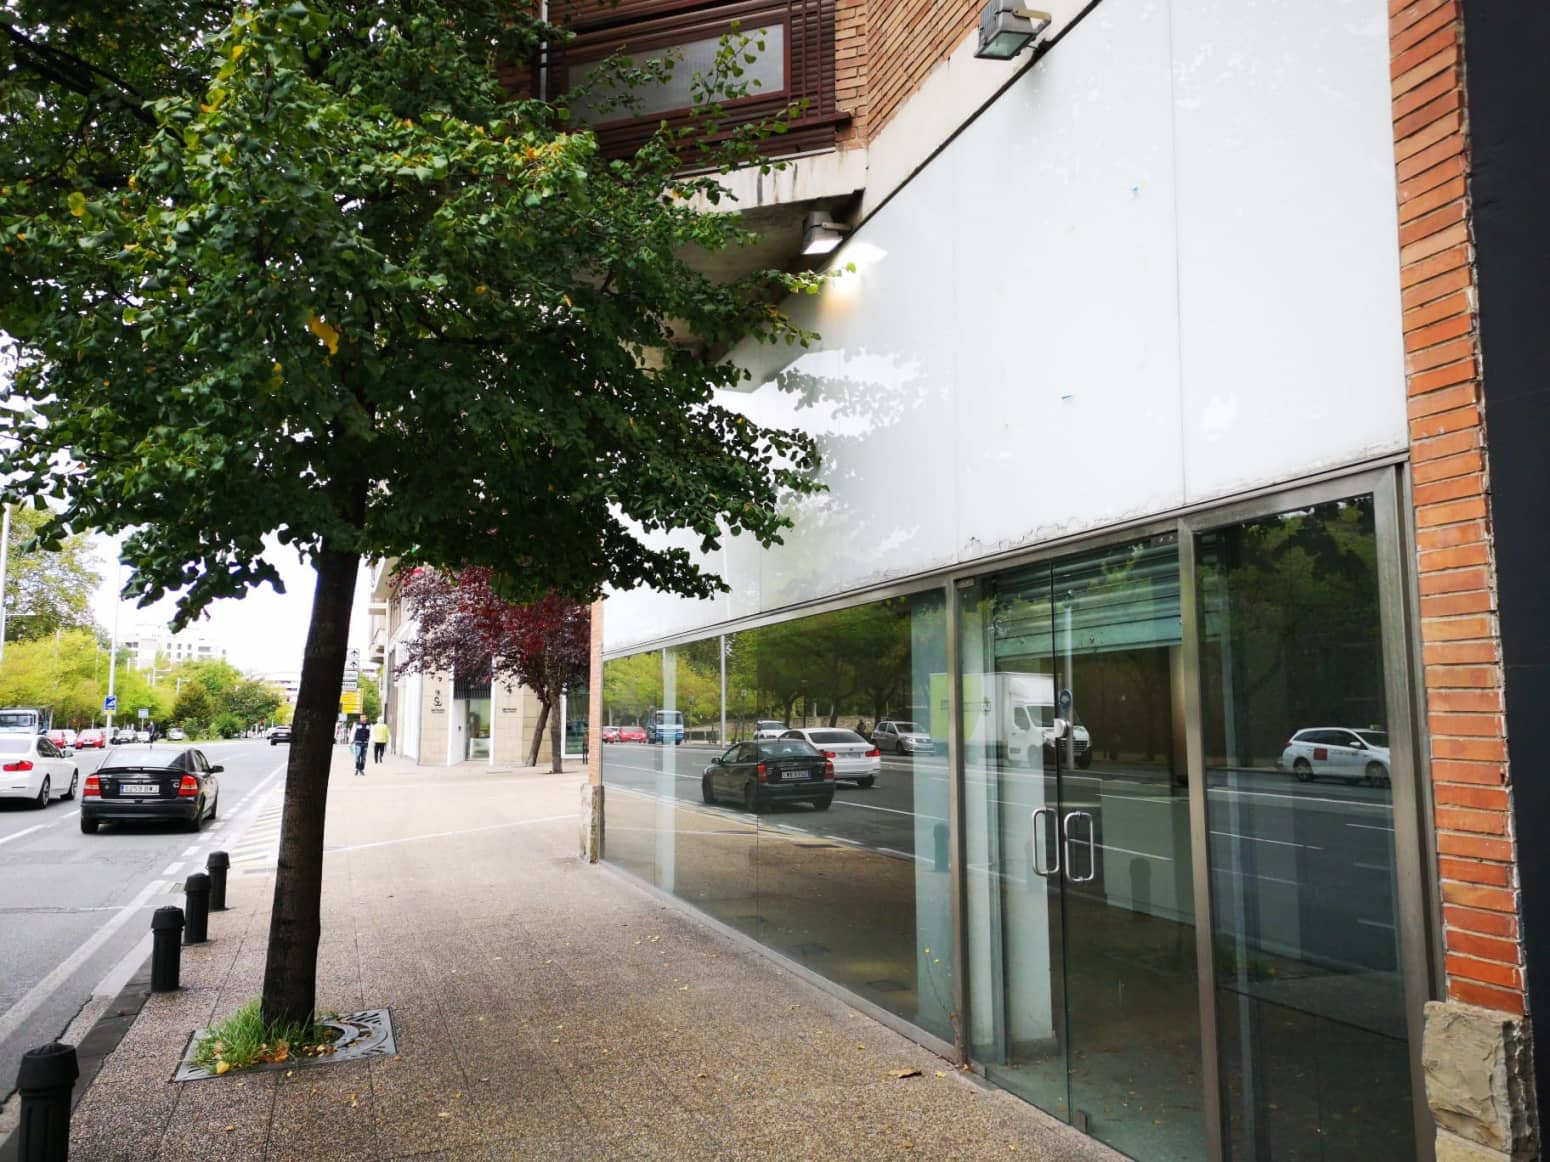 Commercial for sale in Pamplona / Iruna - € 329,000 (Ref: 5031018)